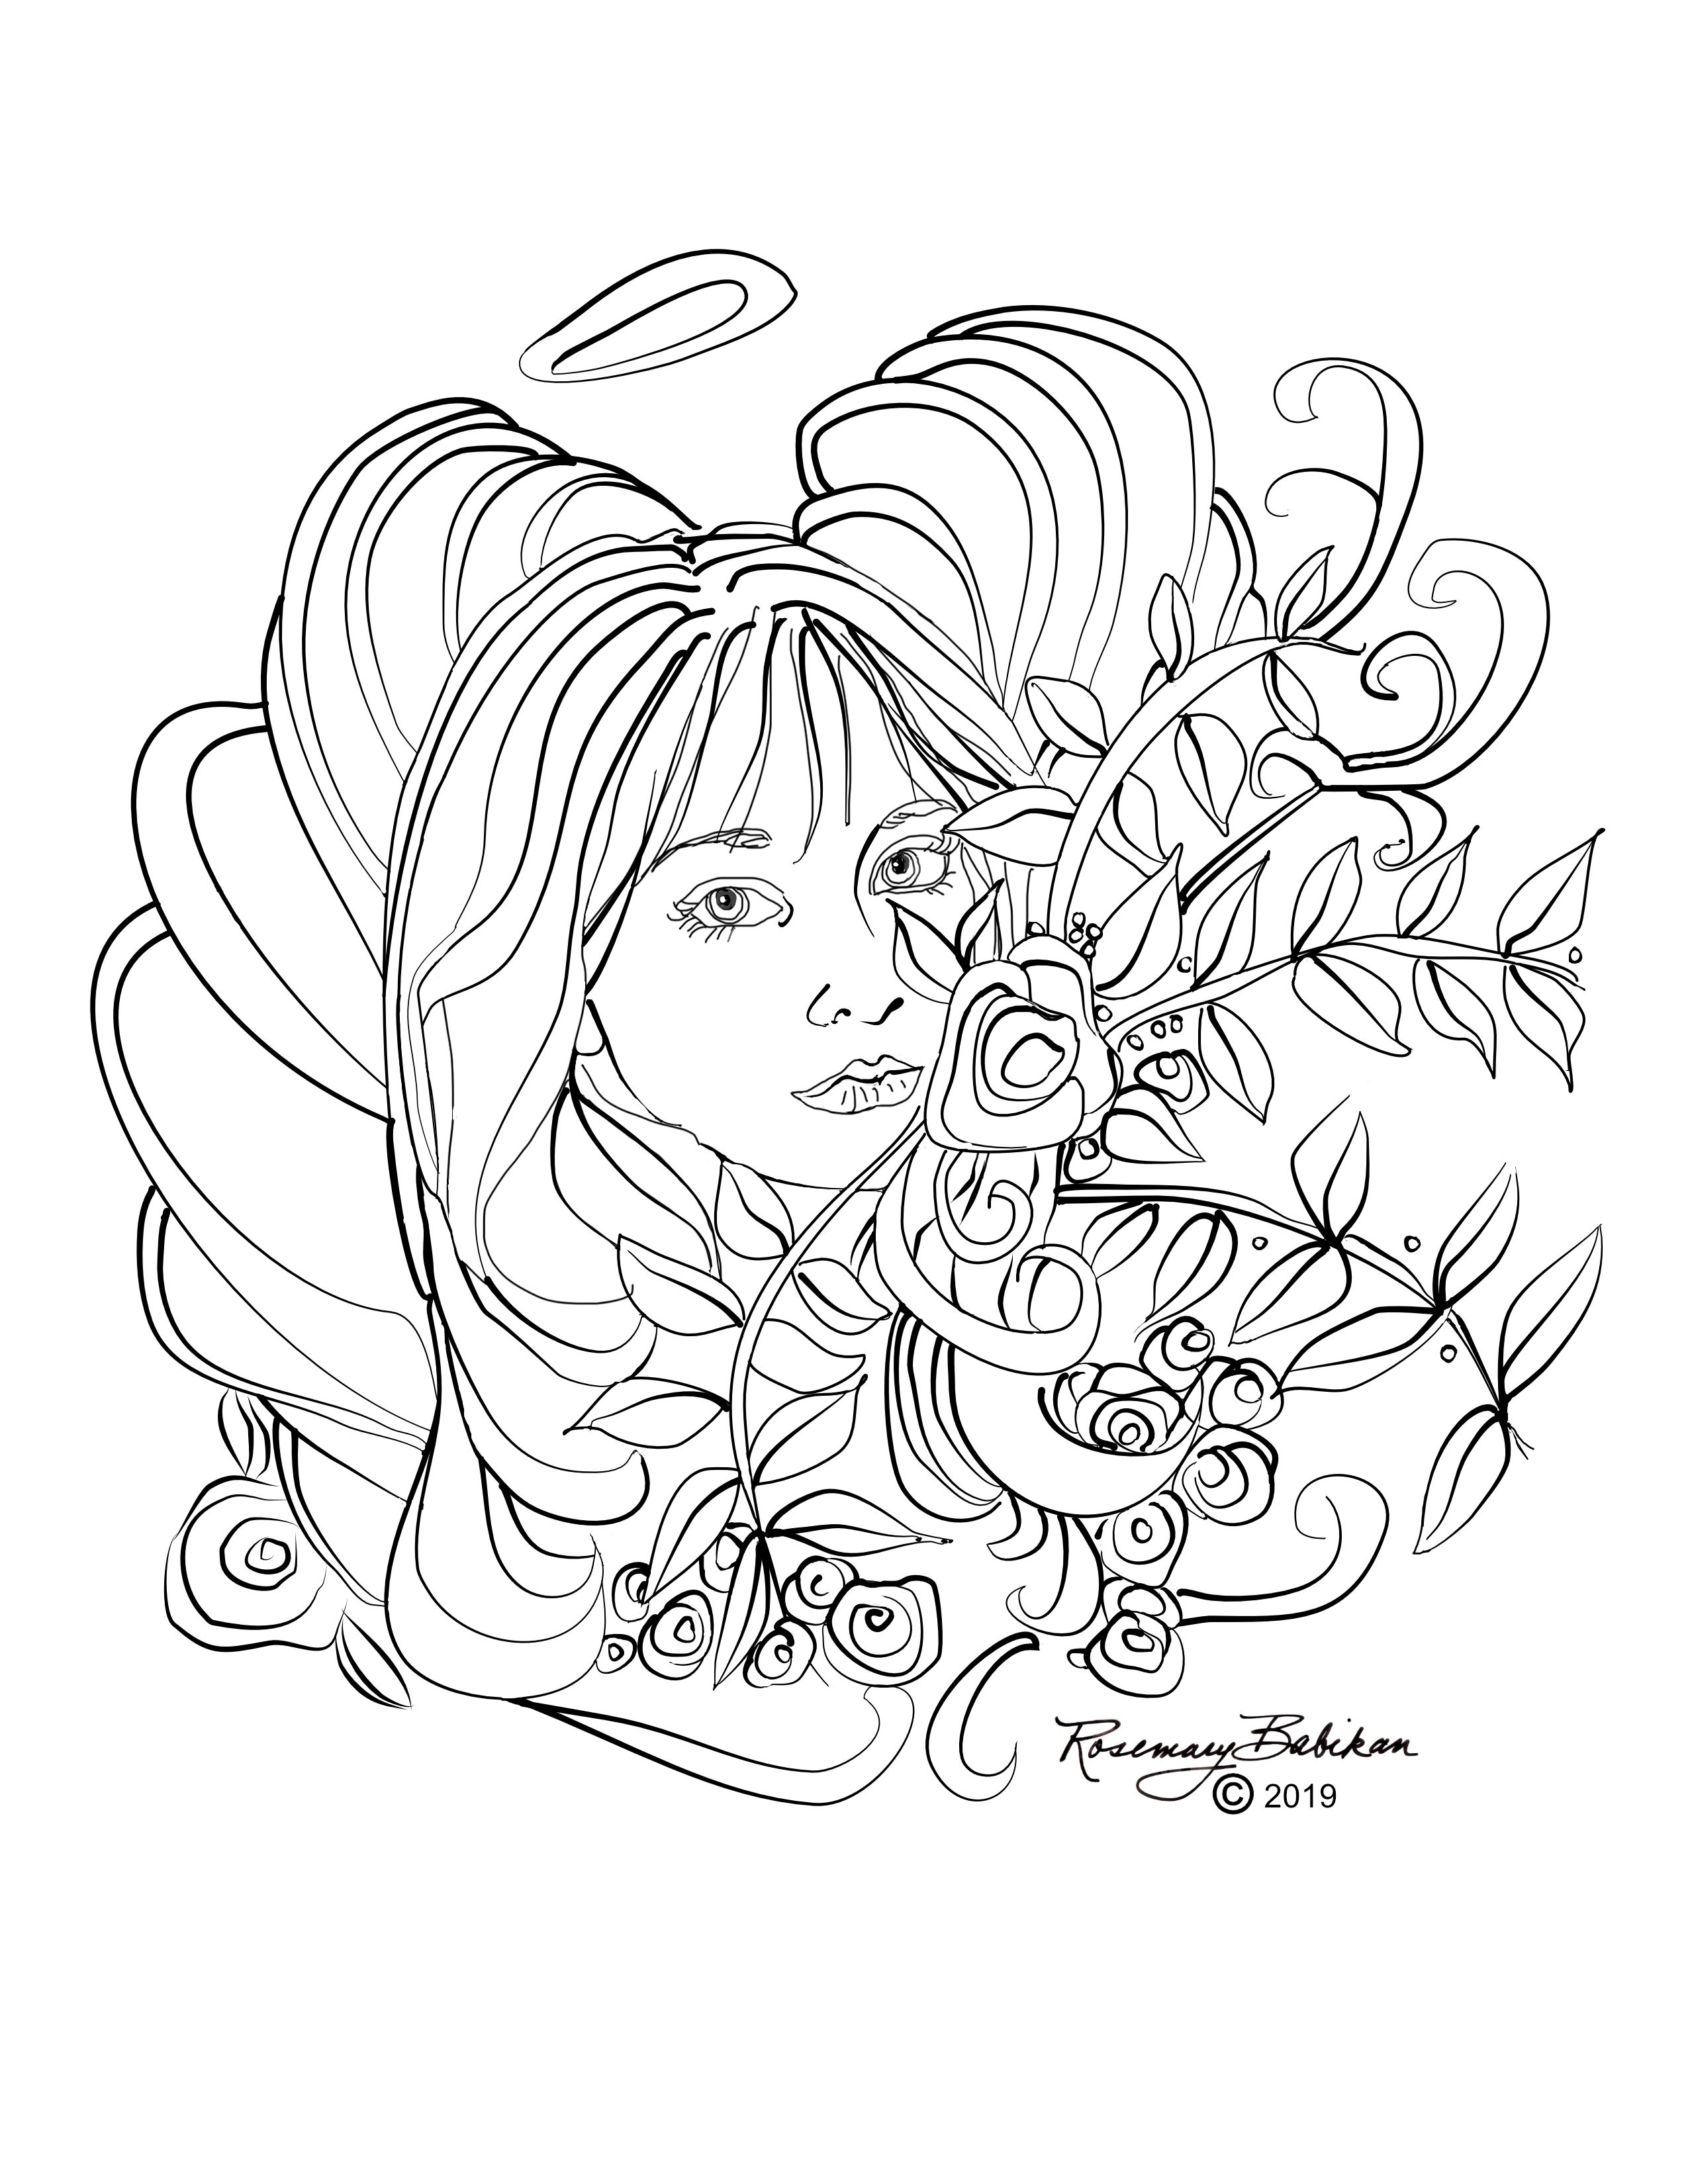 Angel Coloring Pages, Adult Coloring, Detailed Beautiful